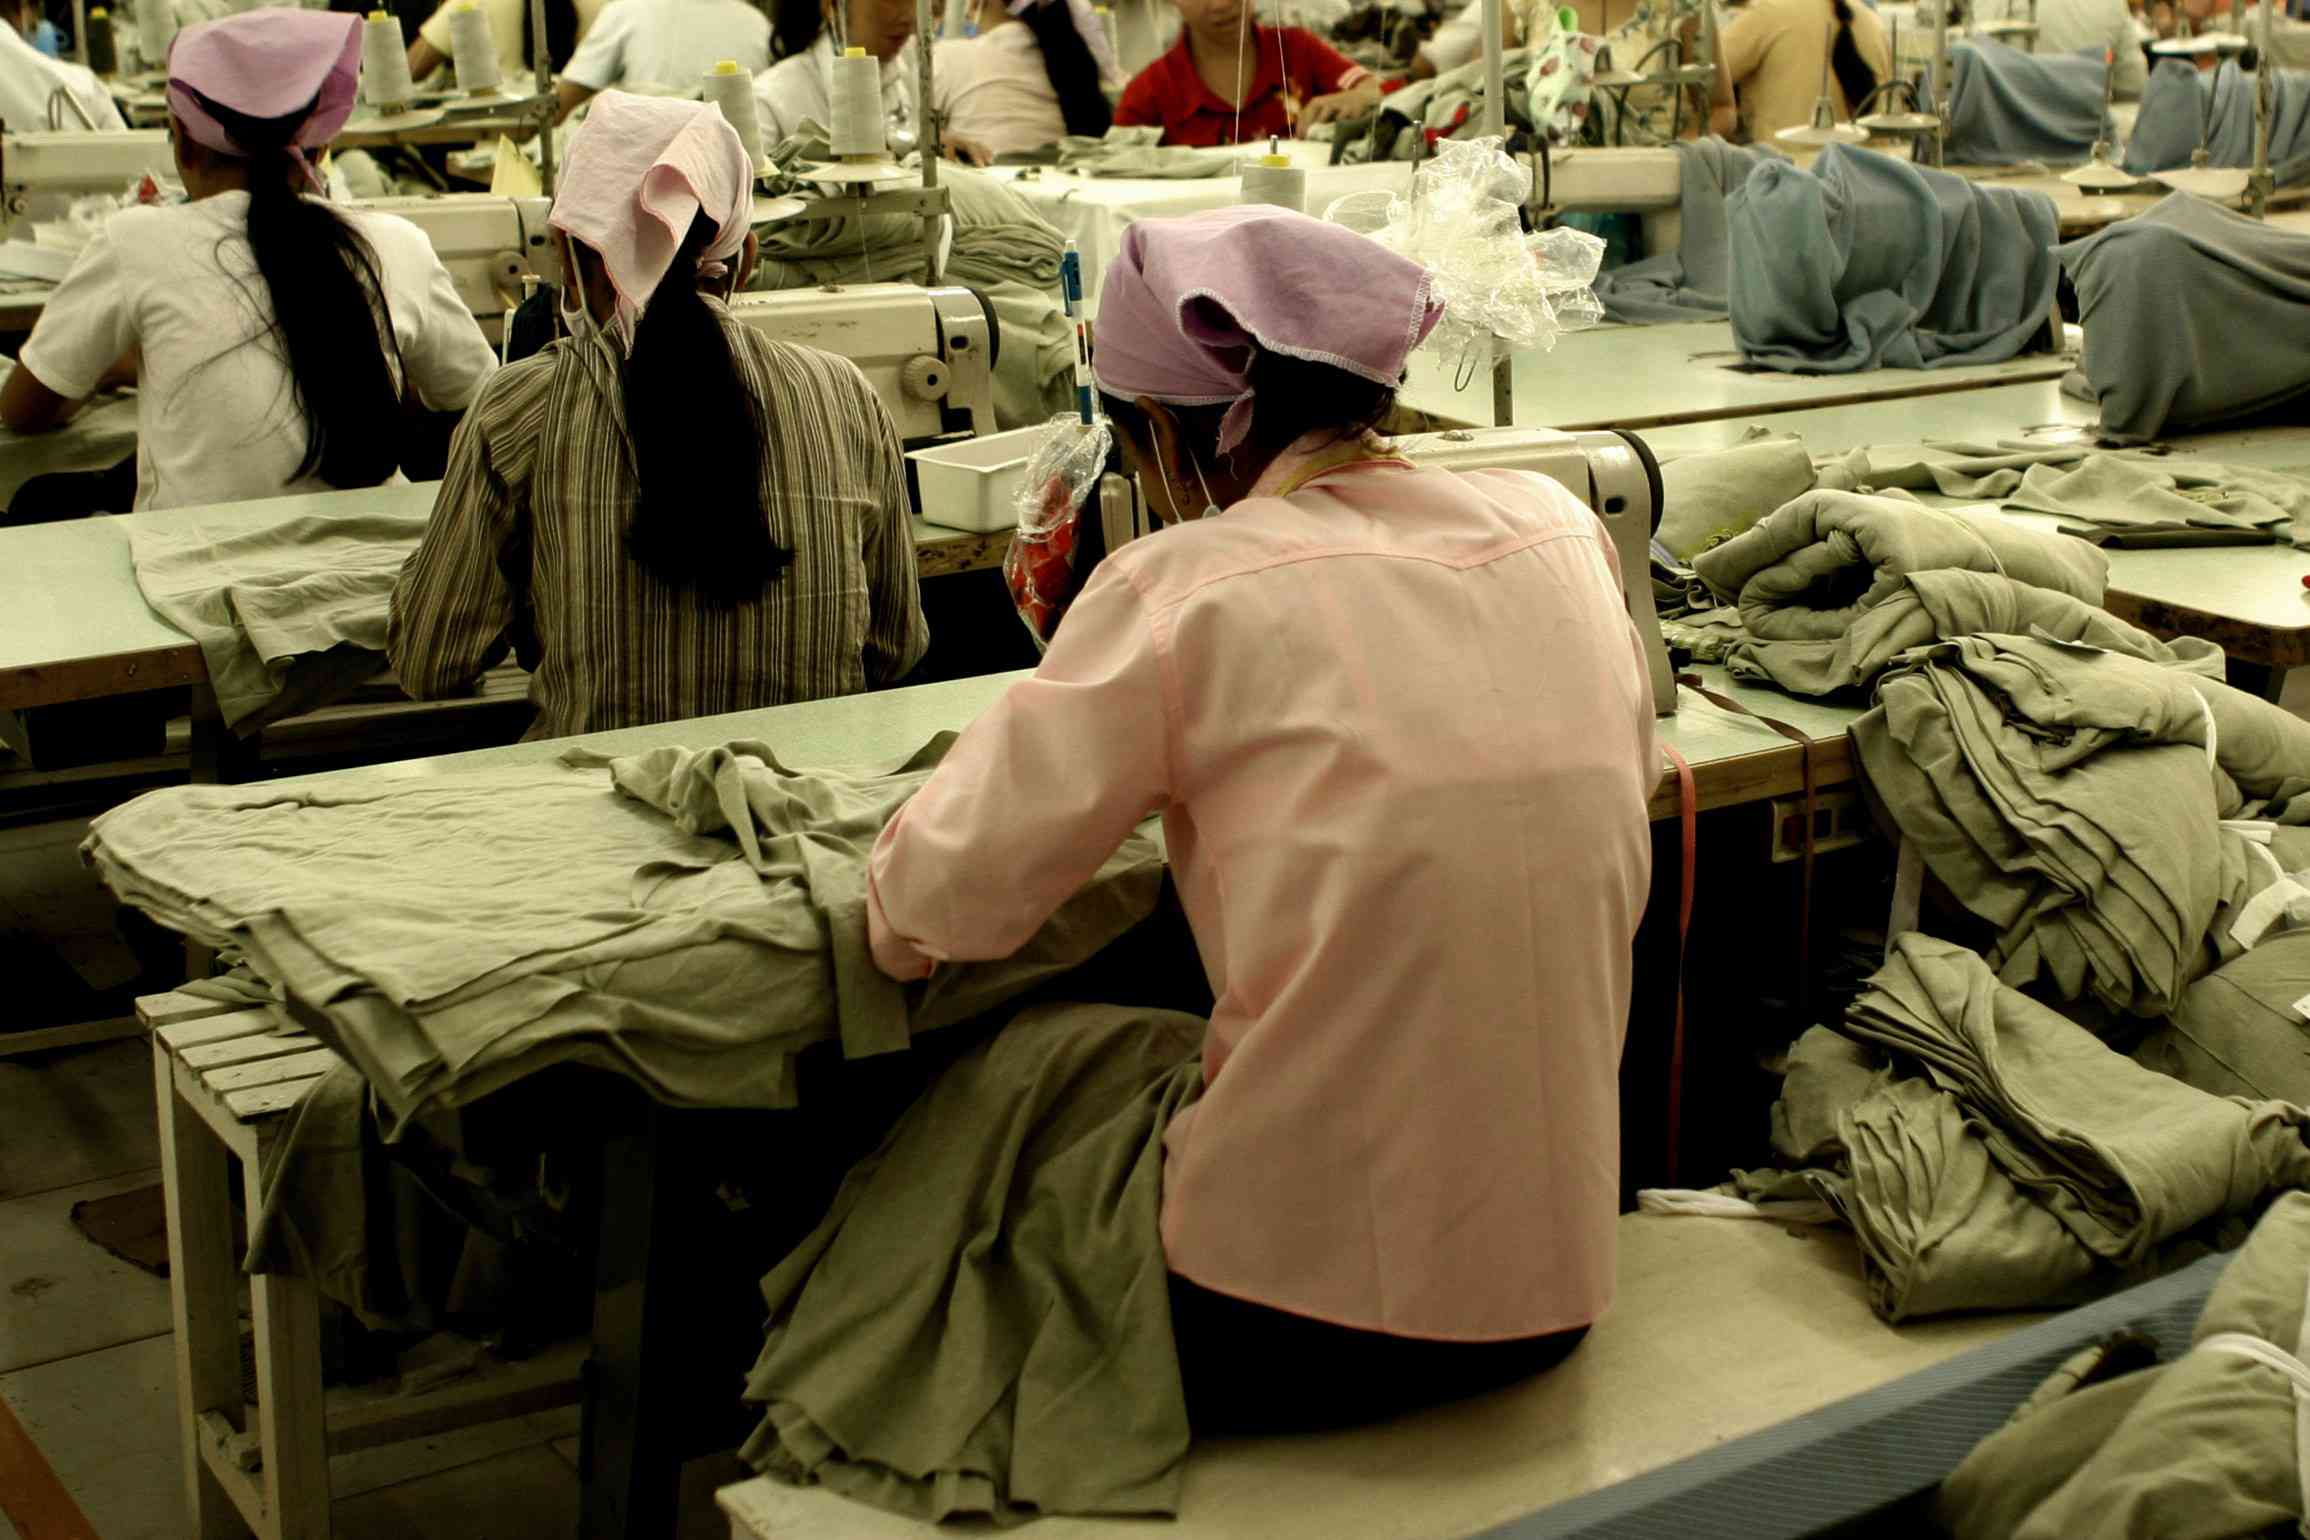 Workers sitting at sewing machines in a garment factory in Southeast Asia